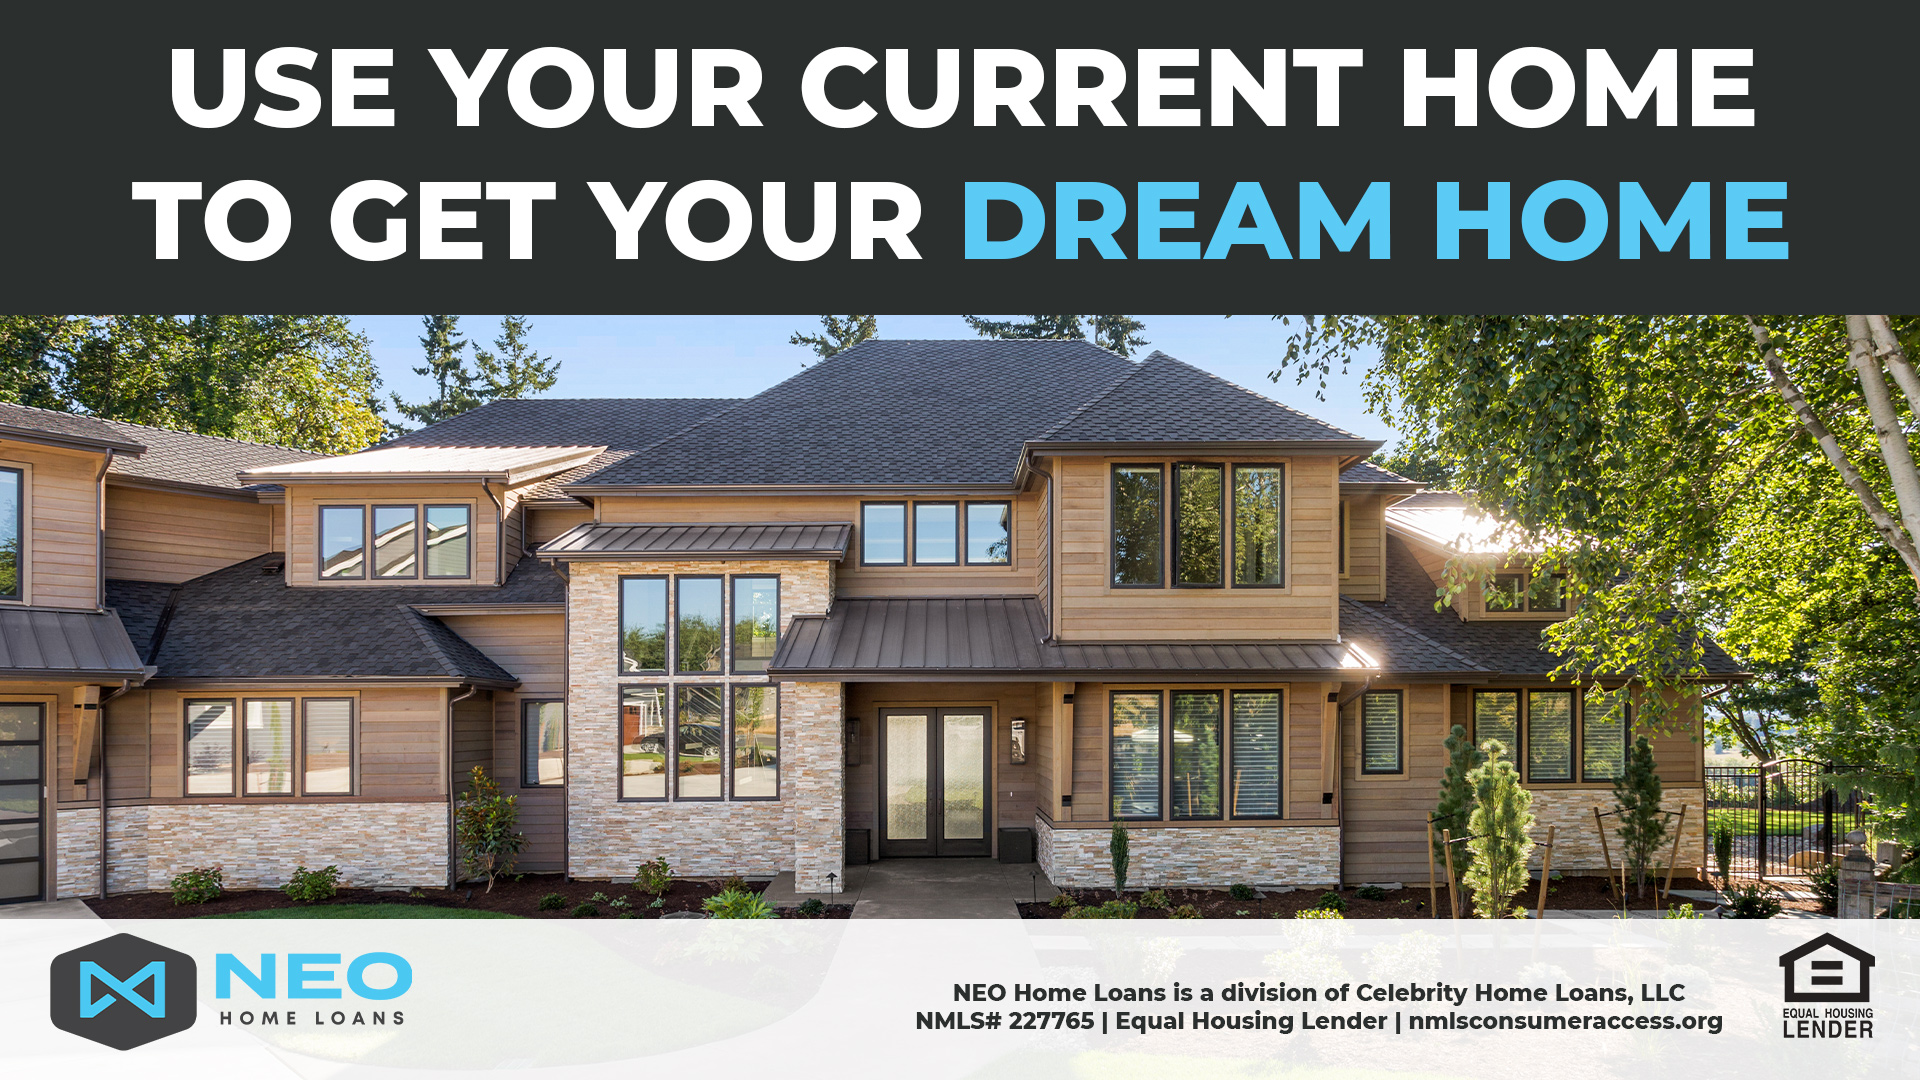 Use Your Current Home To Get Your Dream Home